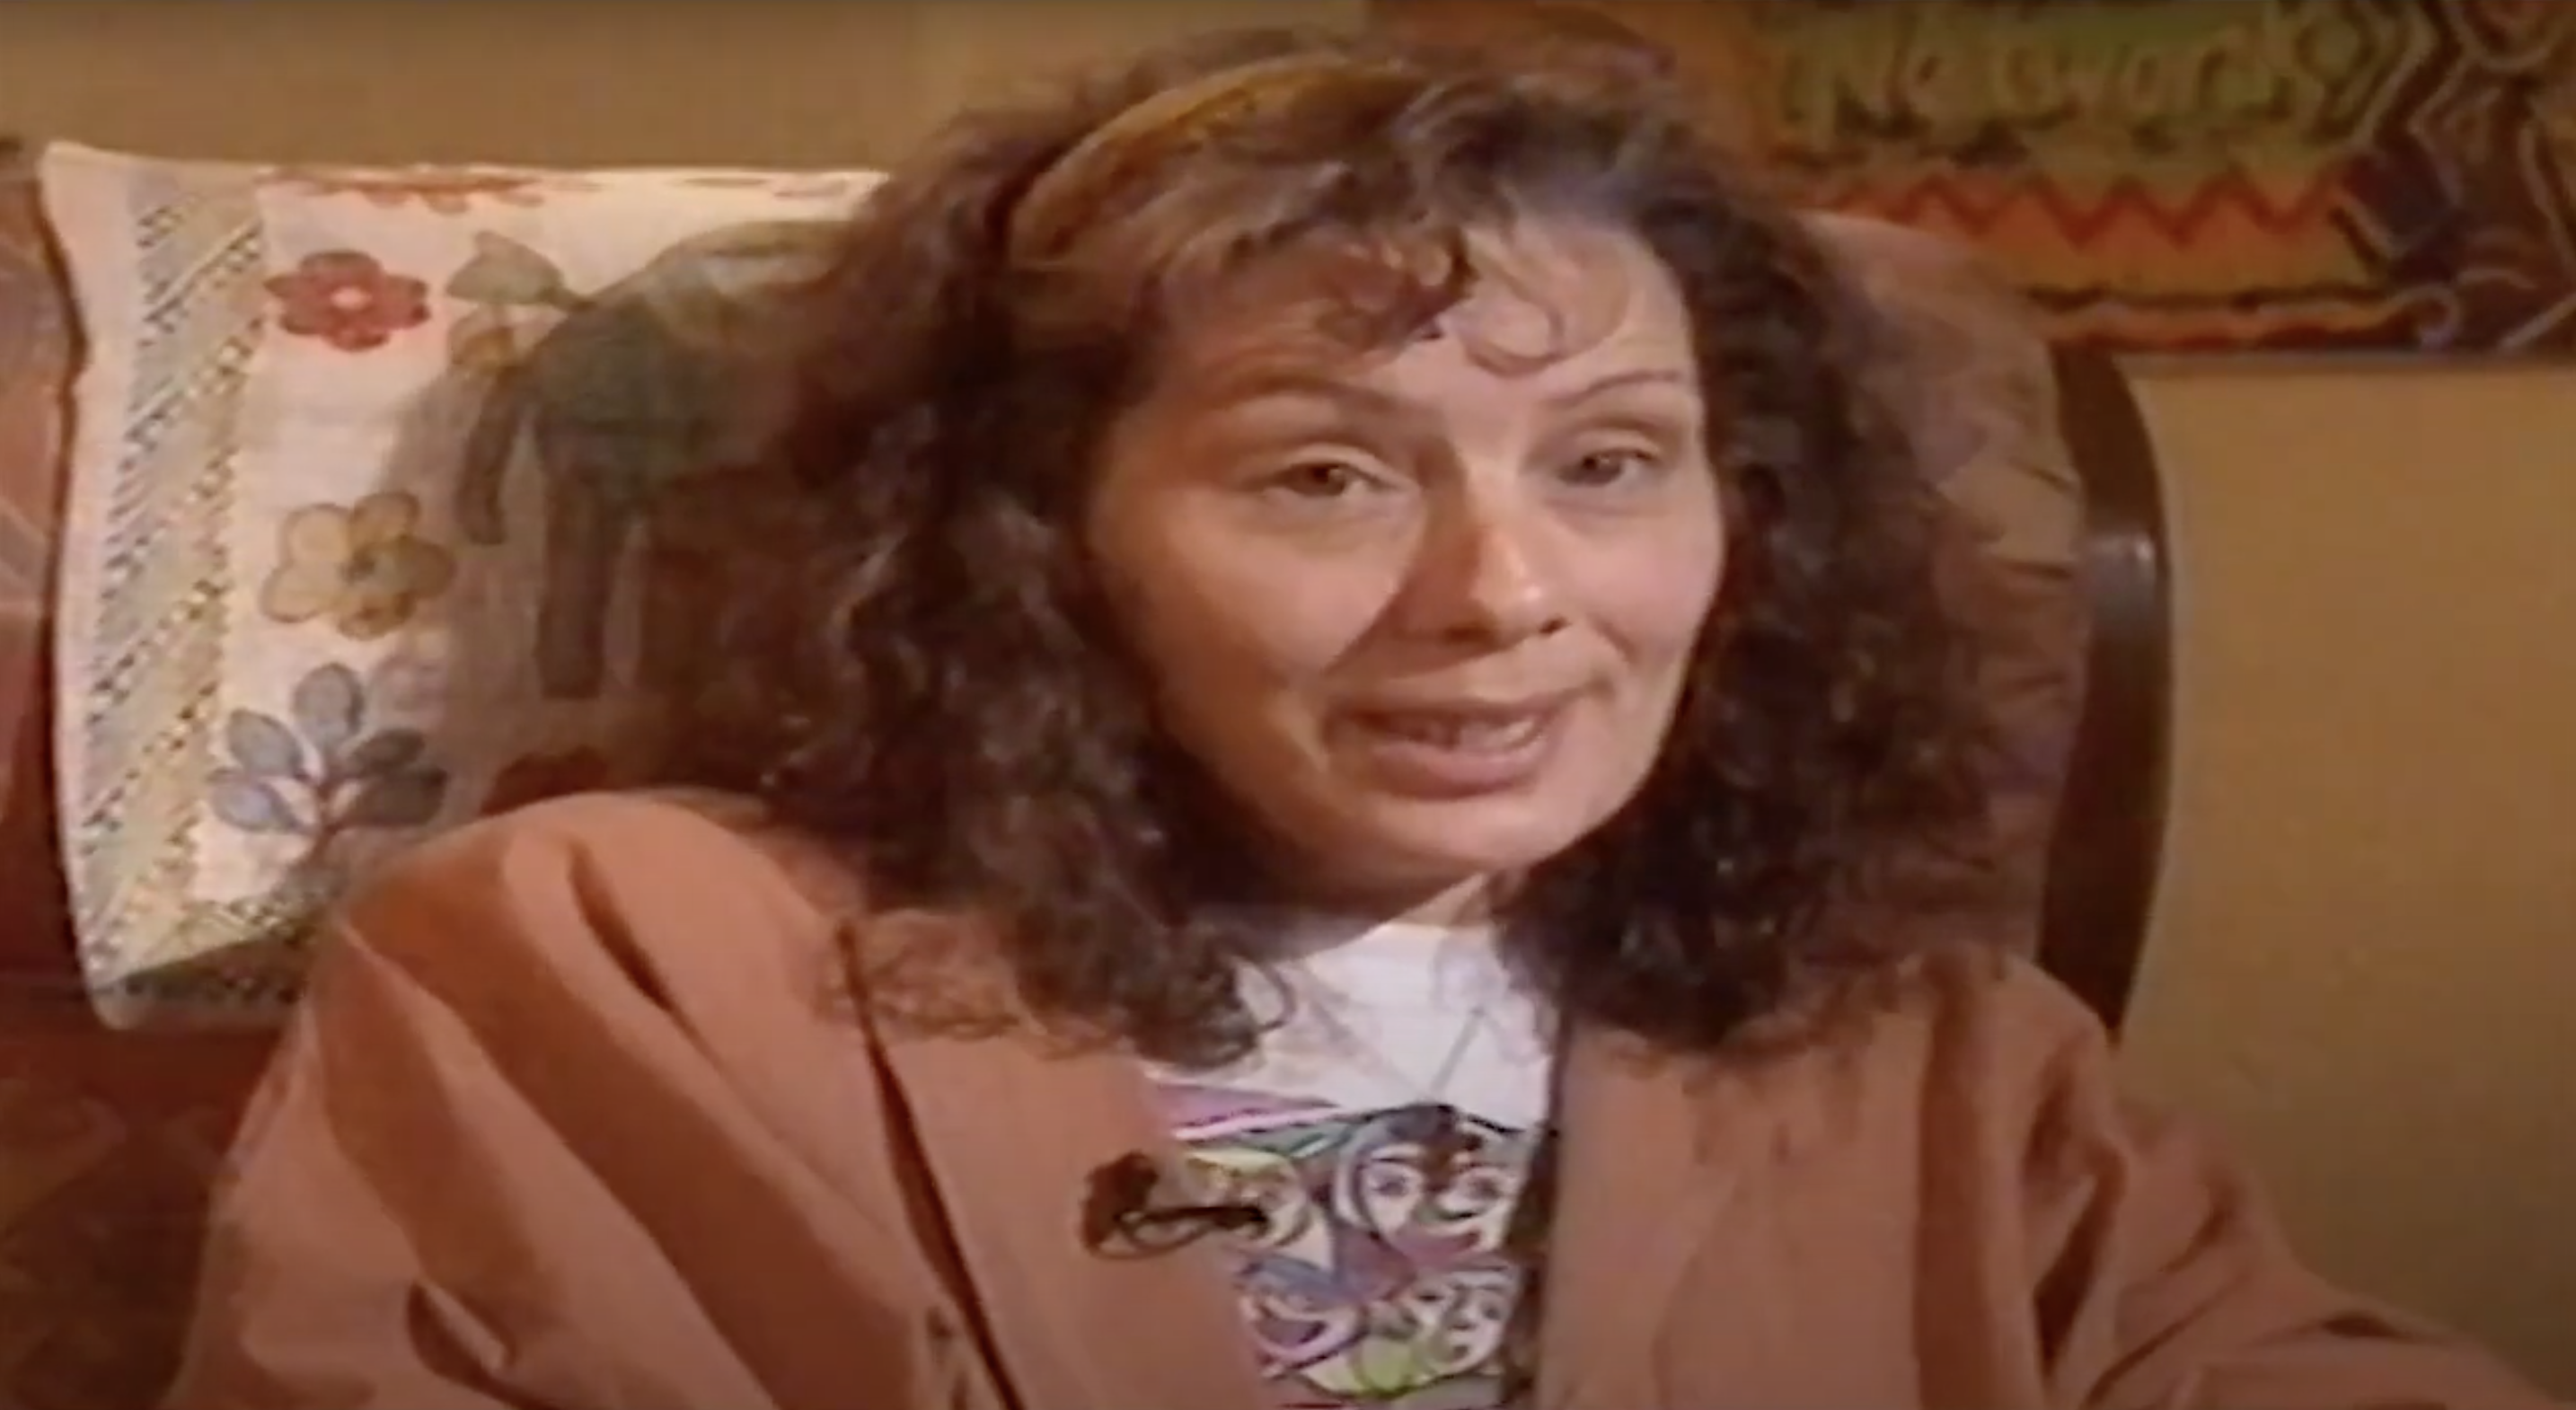 A woman with brown curly hair is sitting in an armchair, talking to the camera.